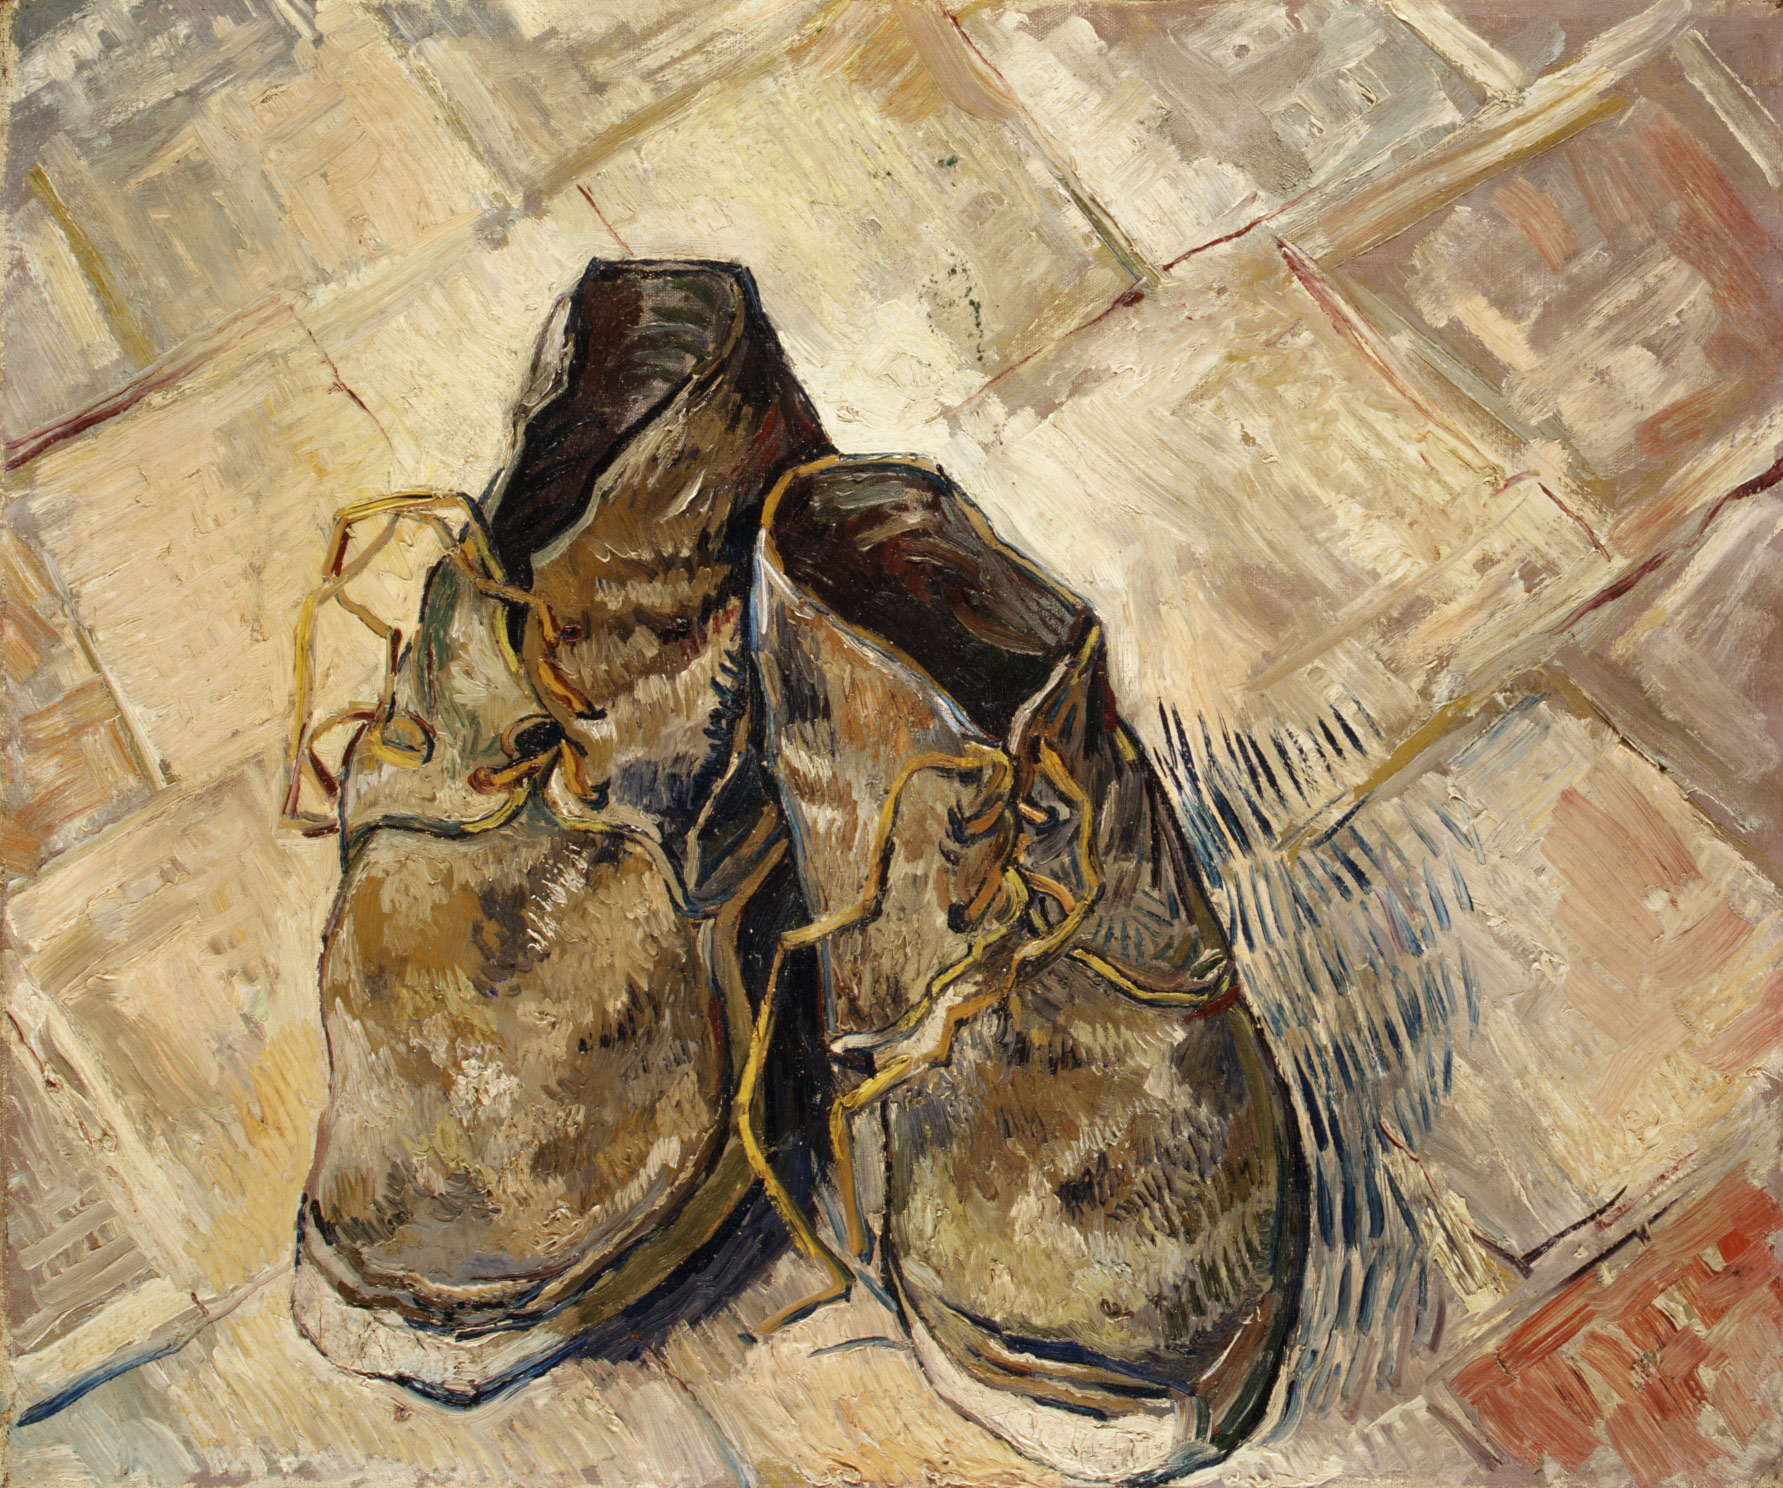 vincent van gogh 1853 1890 essay heilbrunn timeline of art shoes shoes